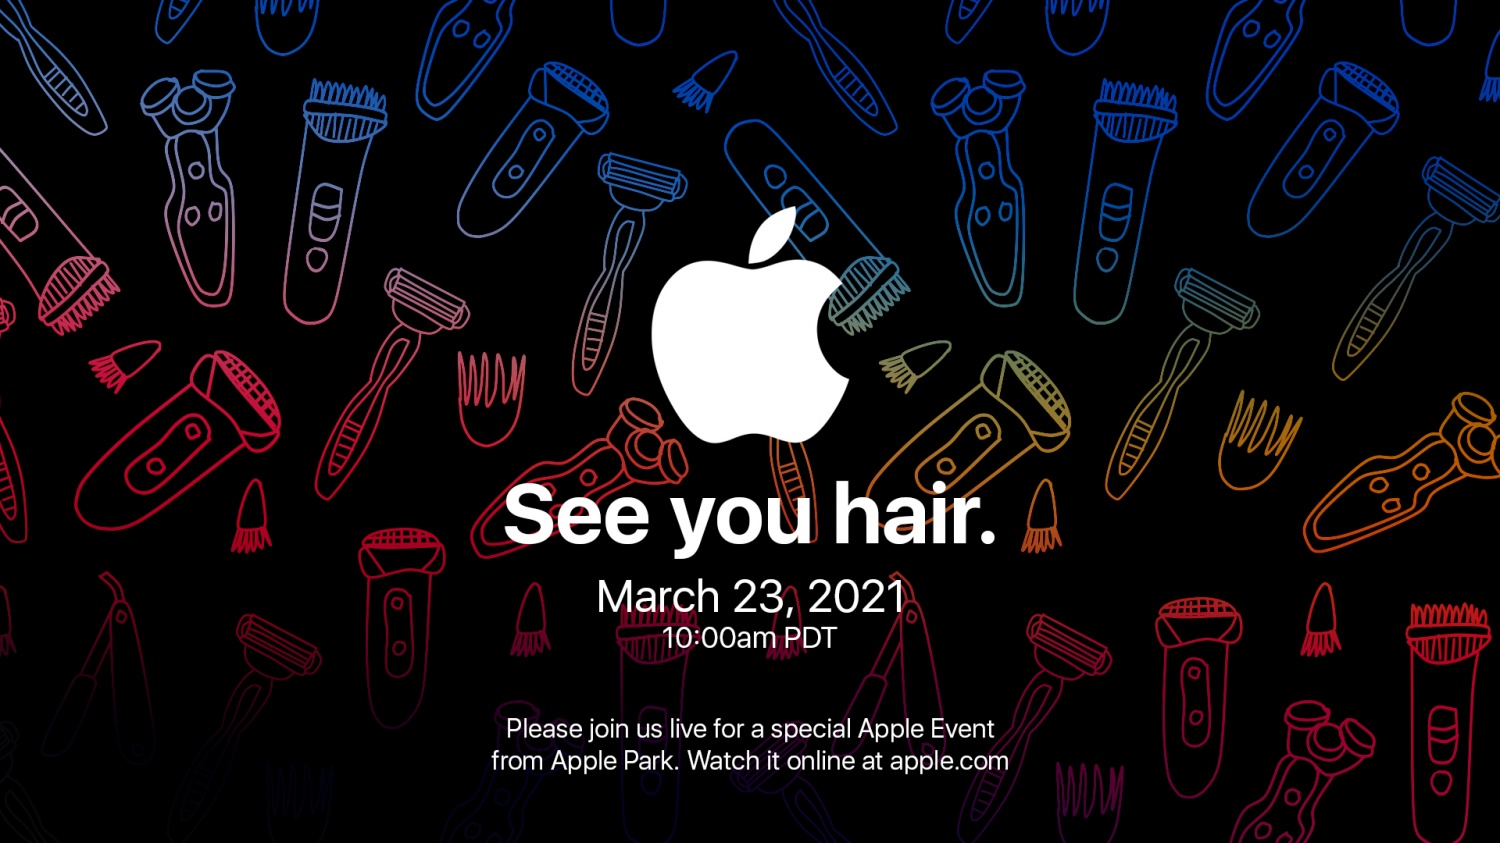 will-there-really-be-an-apple-event-on-march-23